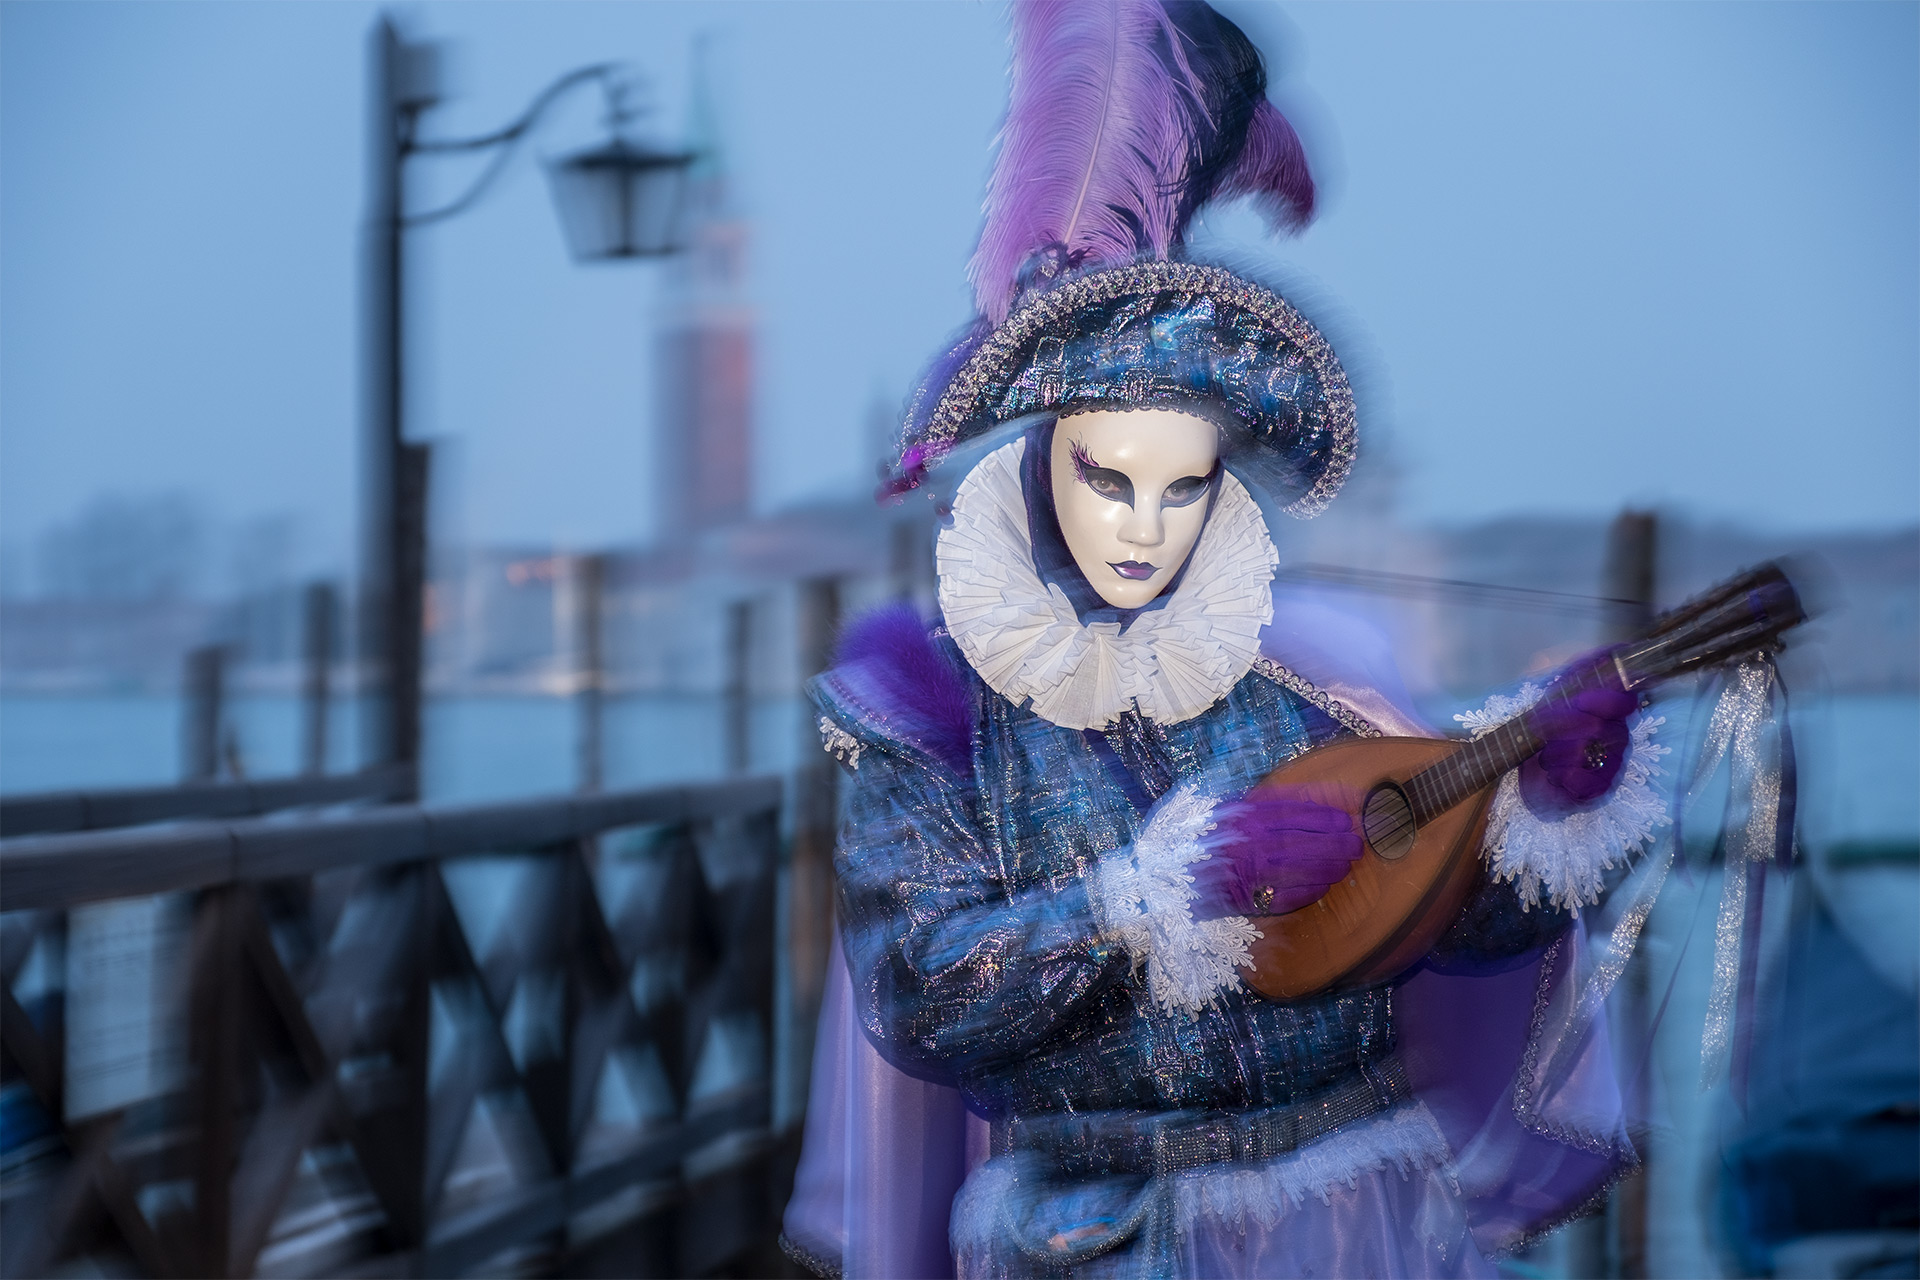 Venice Carnival Photo Tour, 2017 #1 / Venice Carnival Photo Tour, Venice, Show the Original, Fujinon XF 16-55mm f/2.8, Fujifilm X-T2, Drag the Shutter [venice carnival photo tour 2017 1 o]